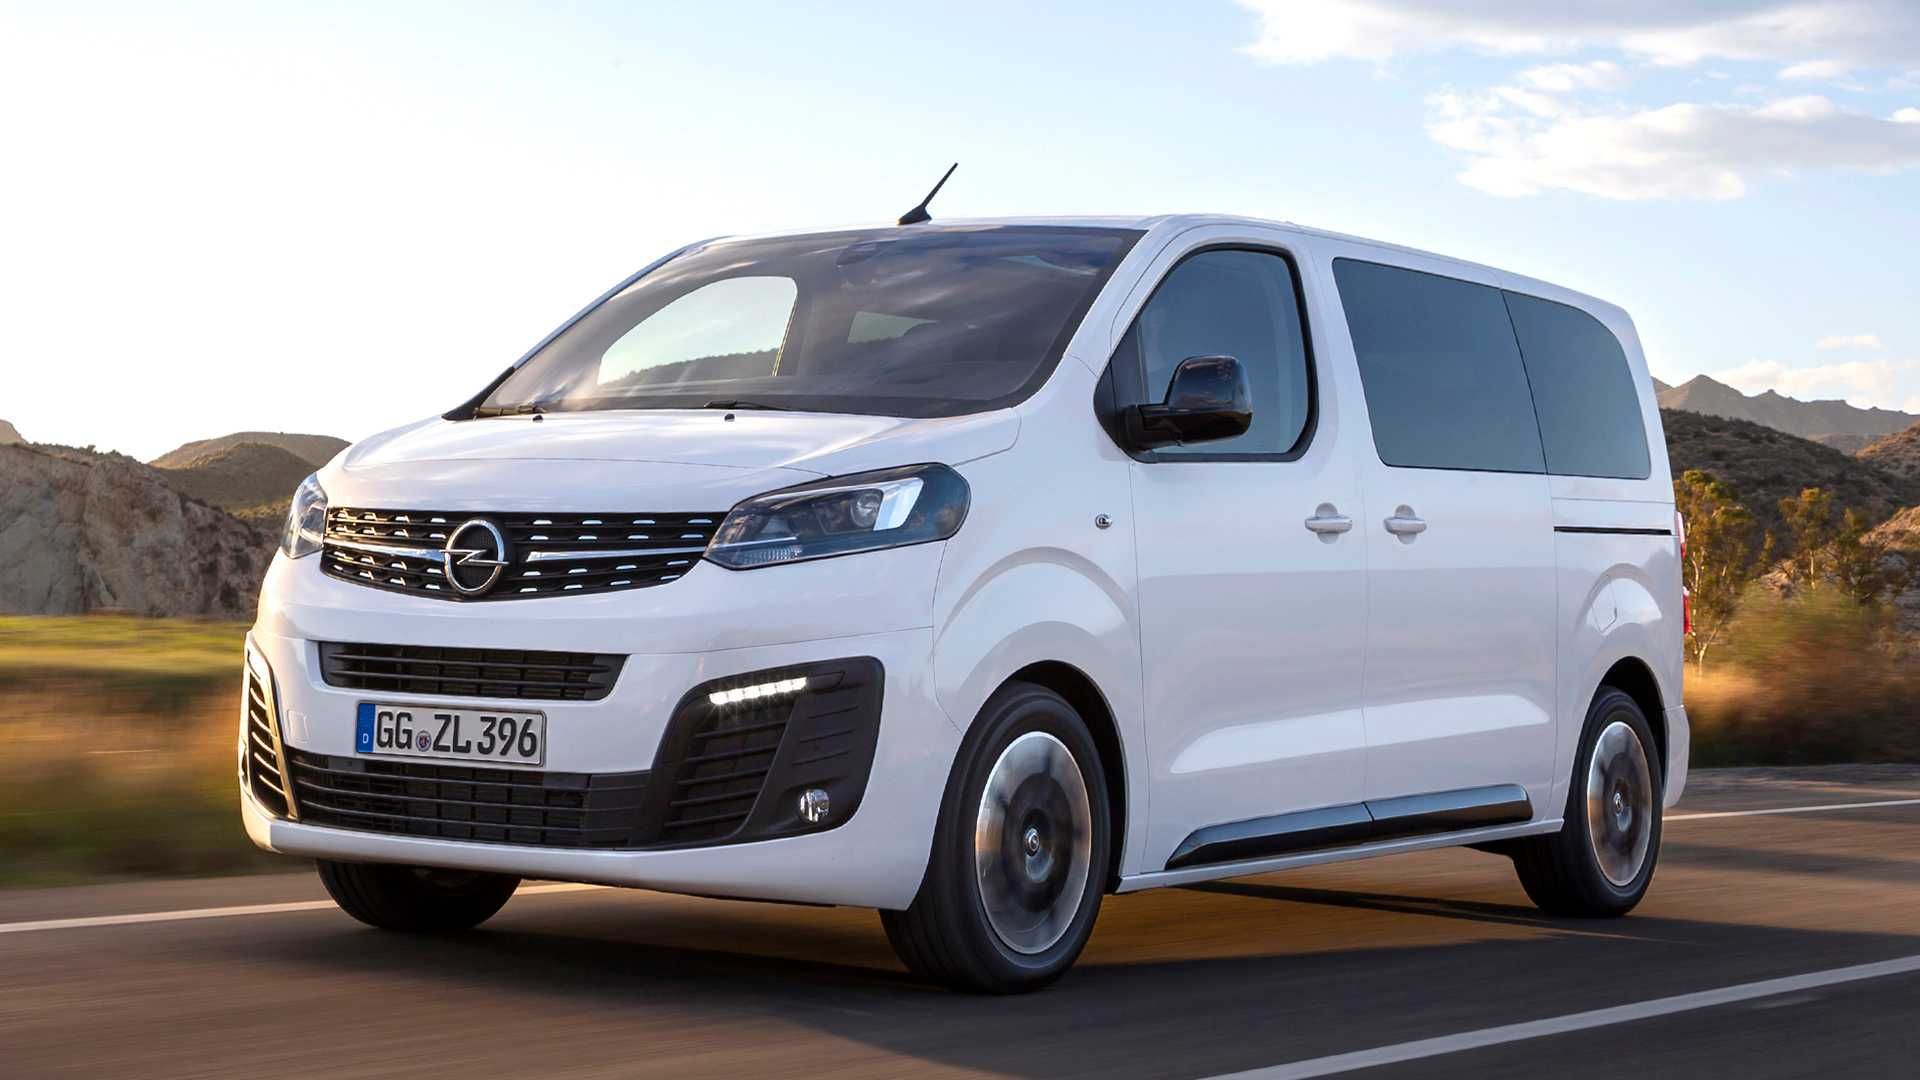 26 New Opel Vivaro 2020 Rumors by Opel Vivaro 2020